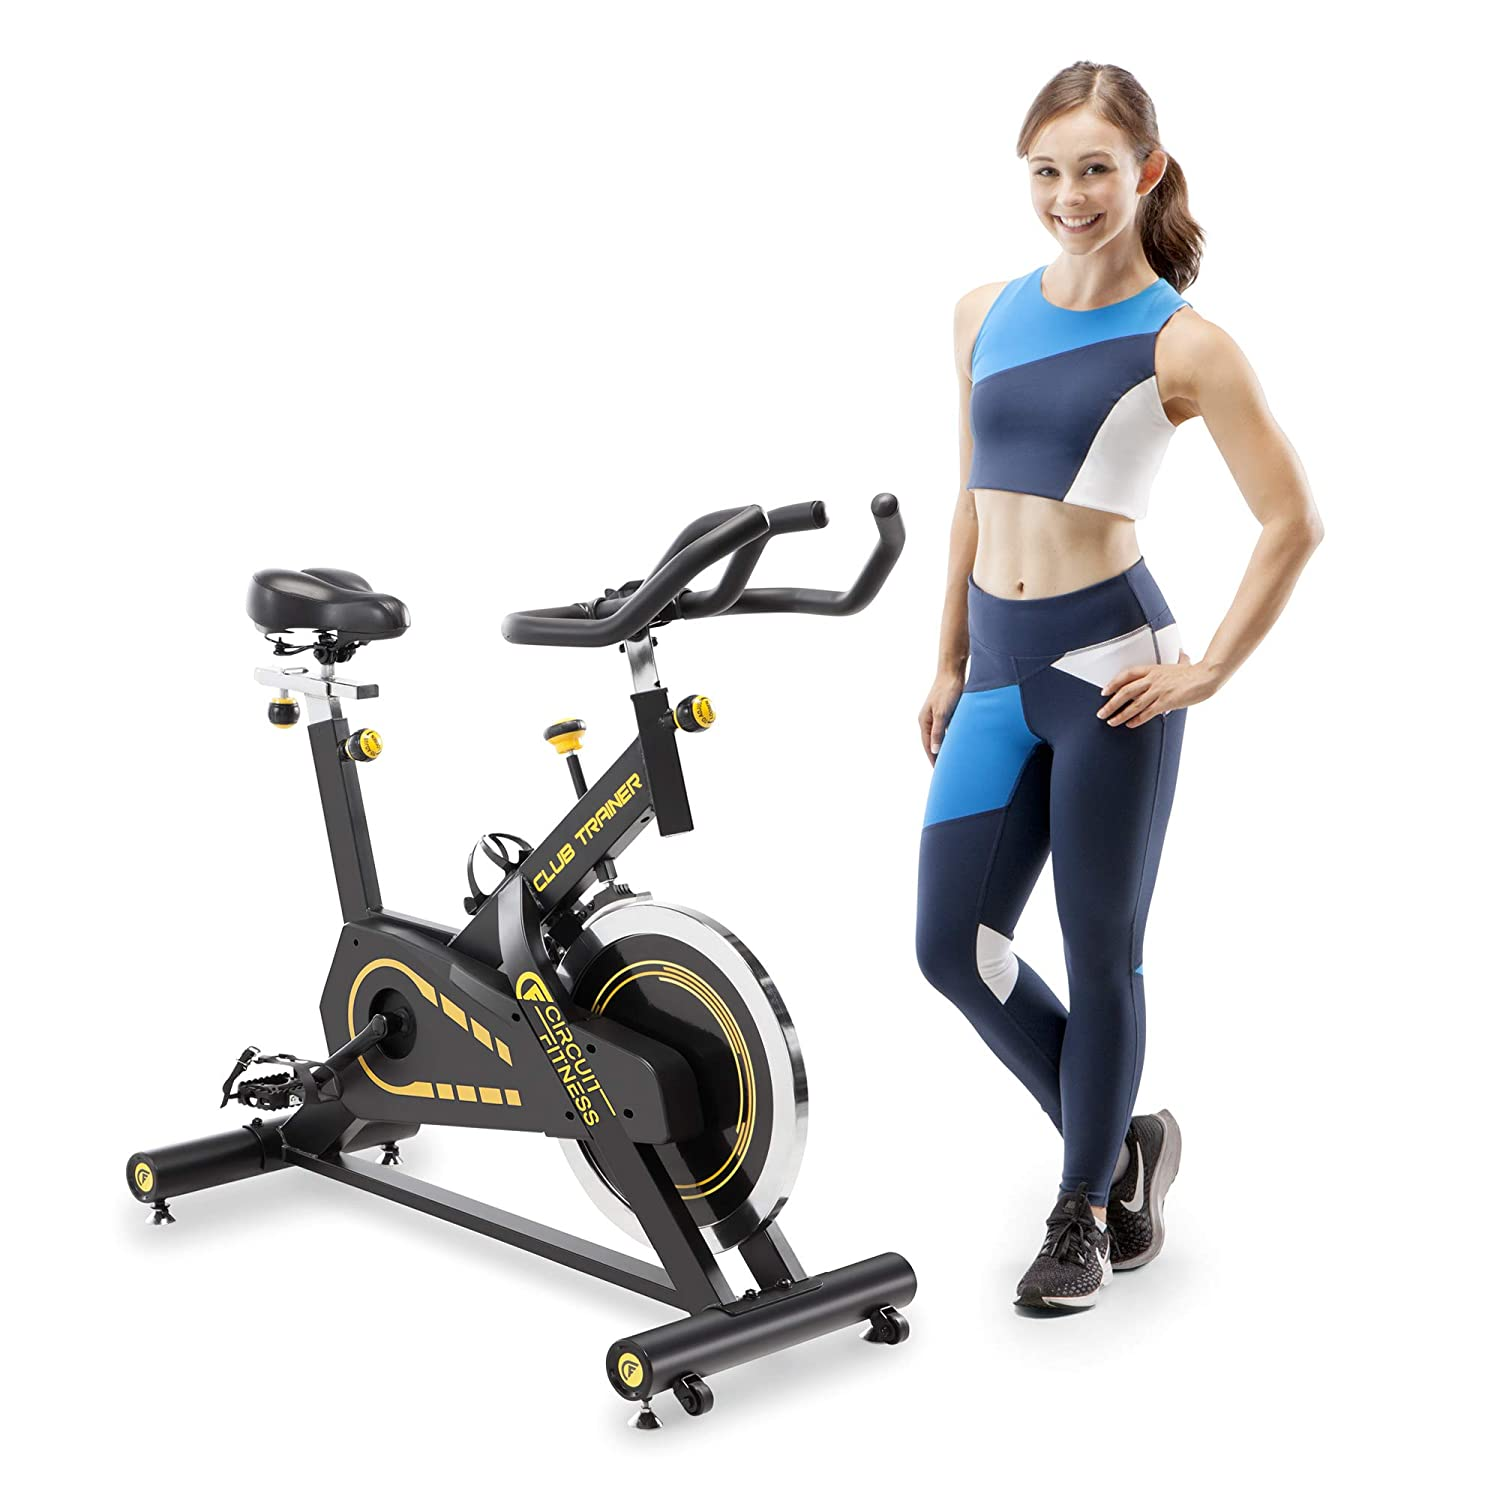 392b623f088 Amazon.com   Circuit Fitness Deluxe Club Revolution Cycle for Cardio  Exercise - Yellow   Sports   Outdoors